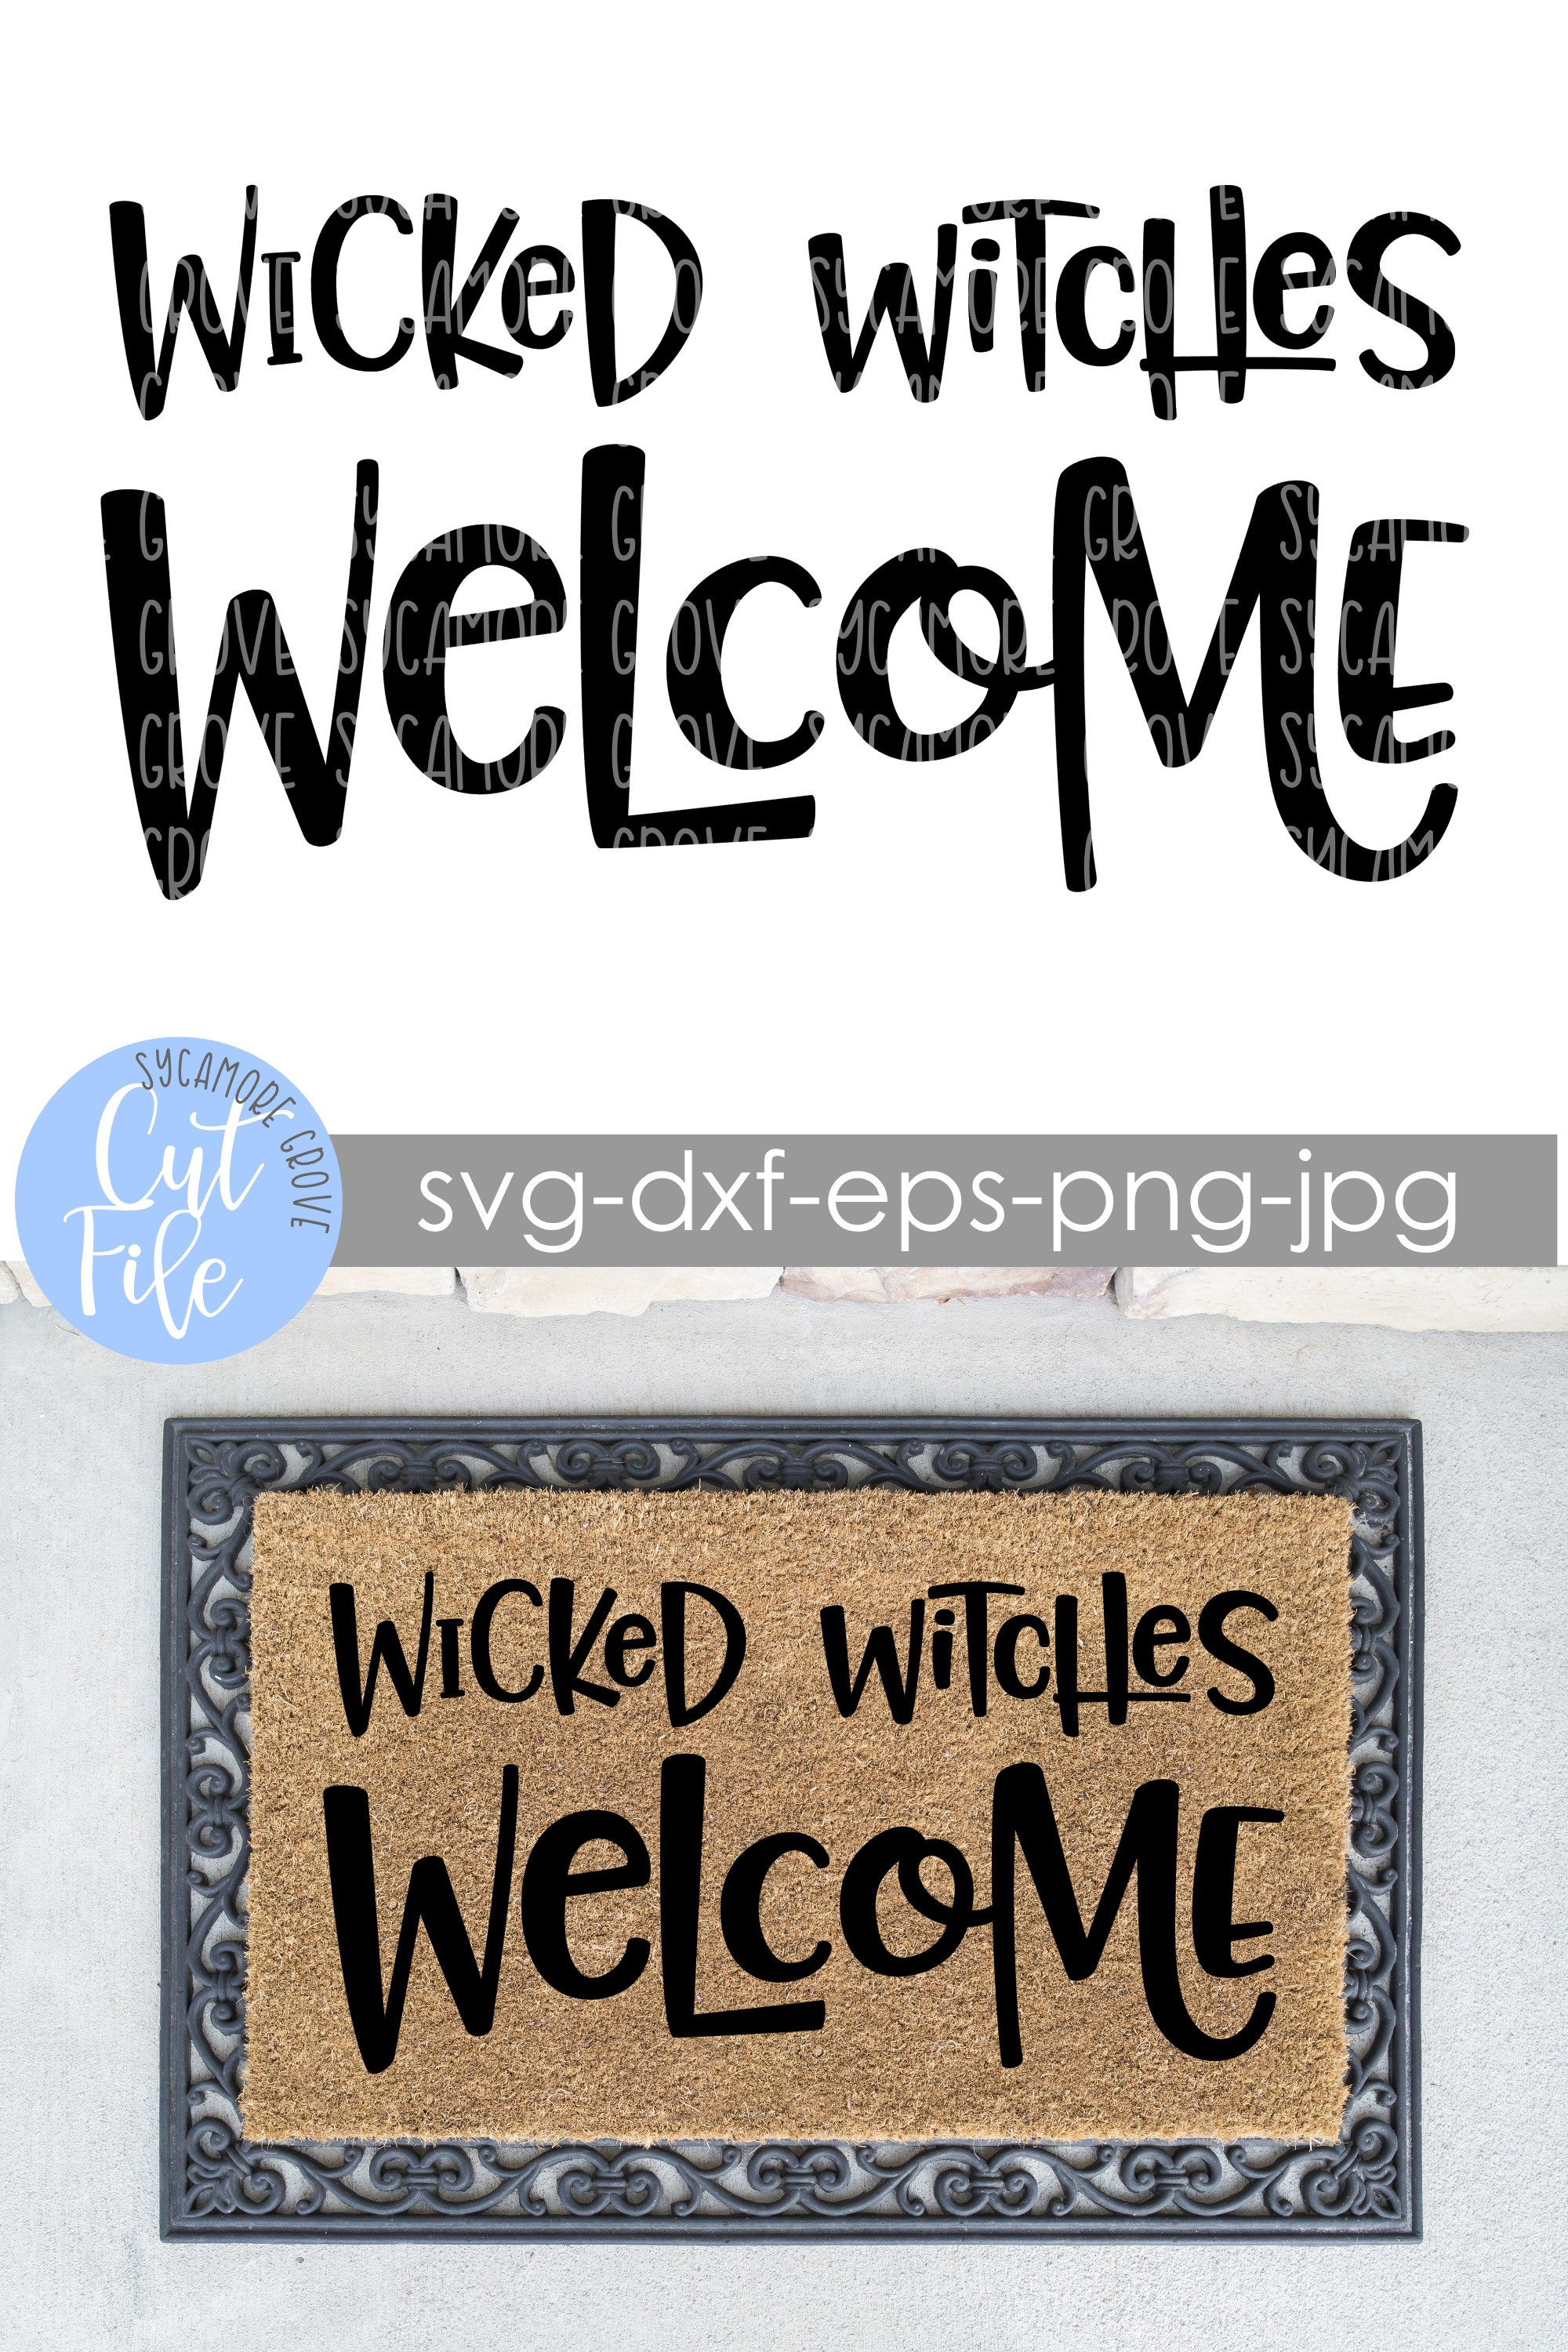 Wicked Witches Welcome | Halloween Doormat | SVG Cut File example image 3